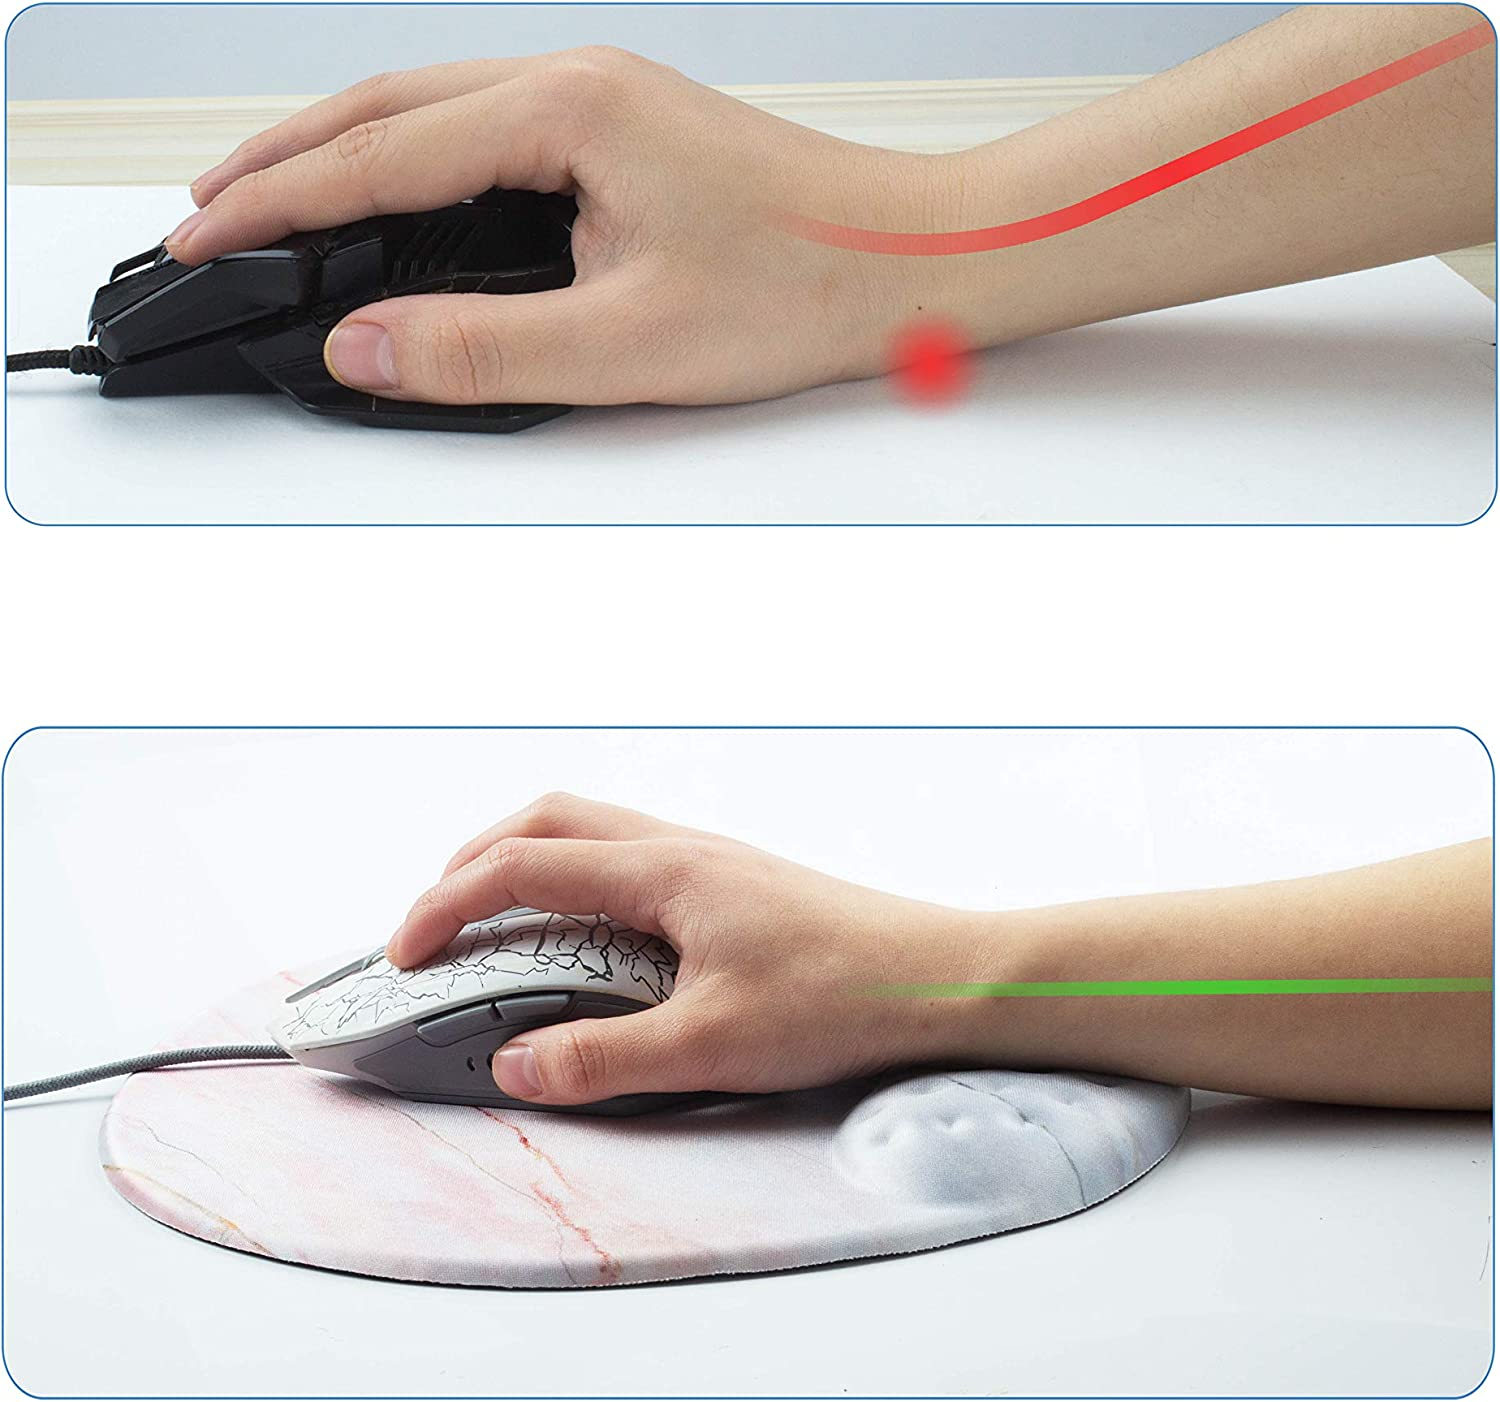 Skid Proof /& Pain Relief Easy Typing for Office Laptop Mac Computers BRILA Mouse Pad with Wrist Rest Support Pad Comfortable Medicinal Grade Memory Foam Gel with Pattern Design Rick